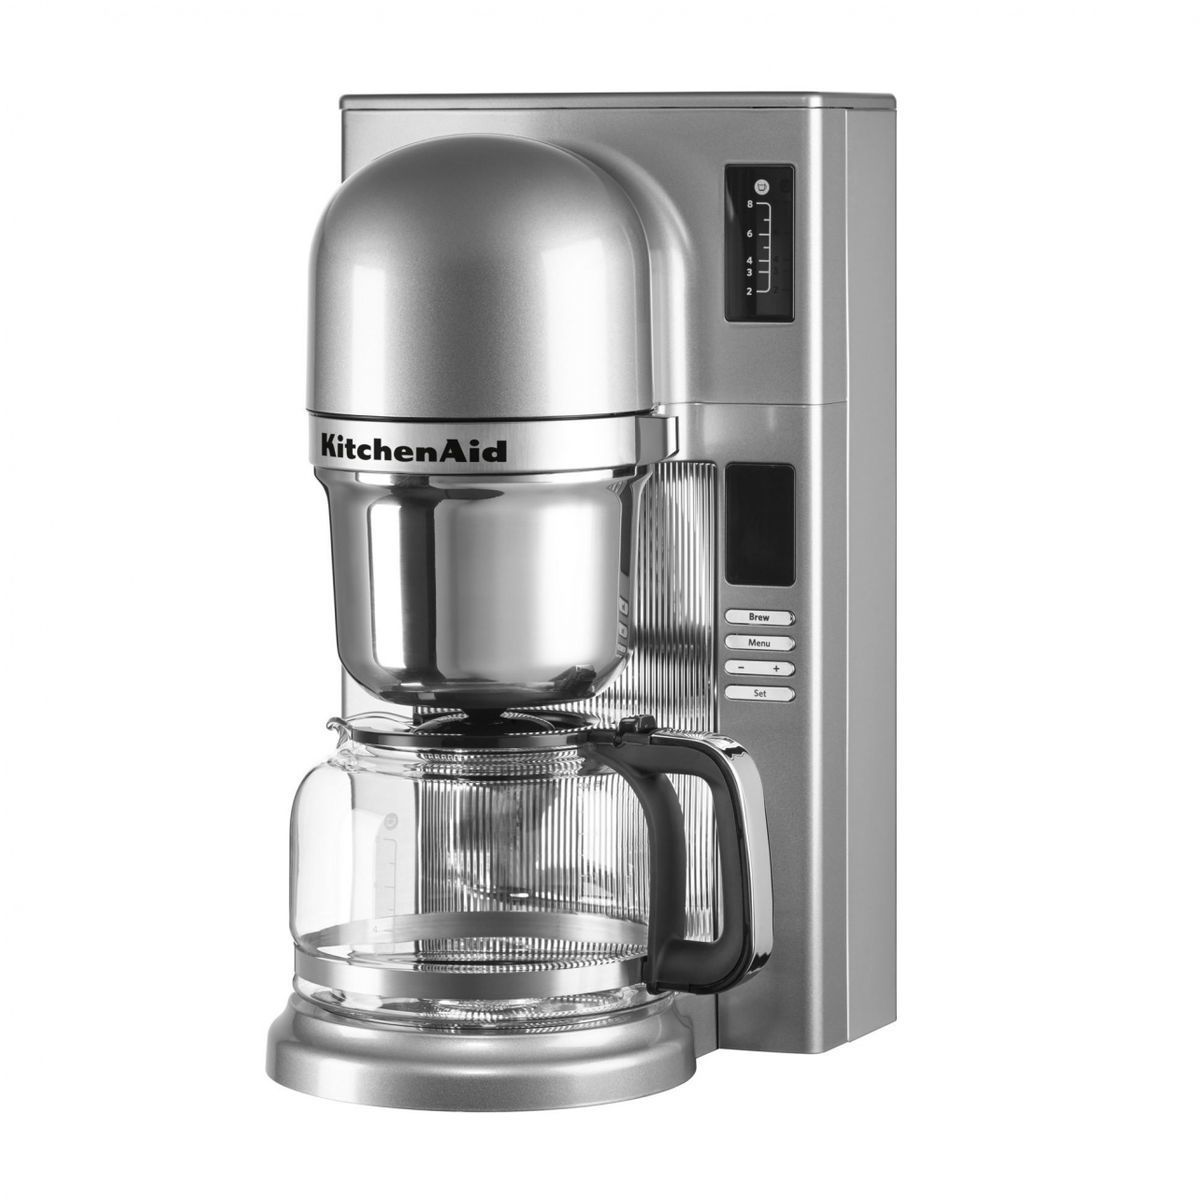 kitchenaid kitchenaid 5kcm0802 pour over coffee brewer silver28 cups